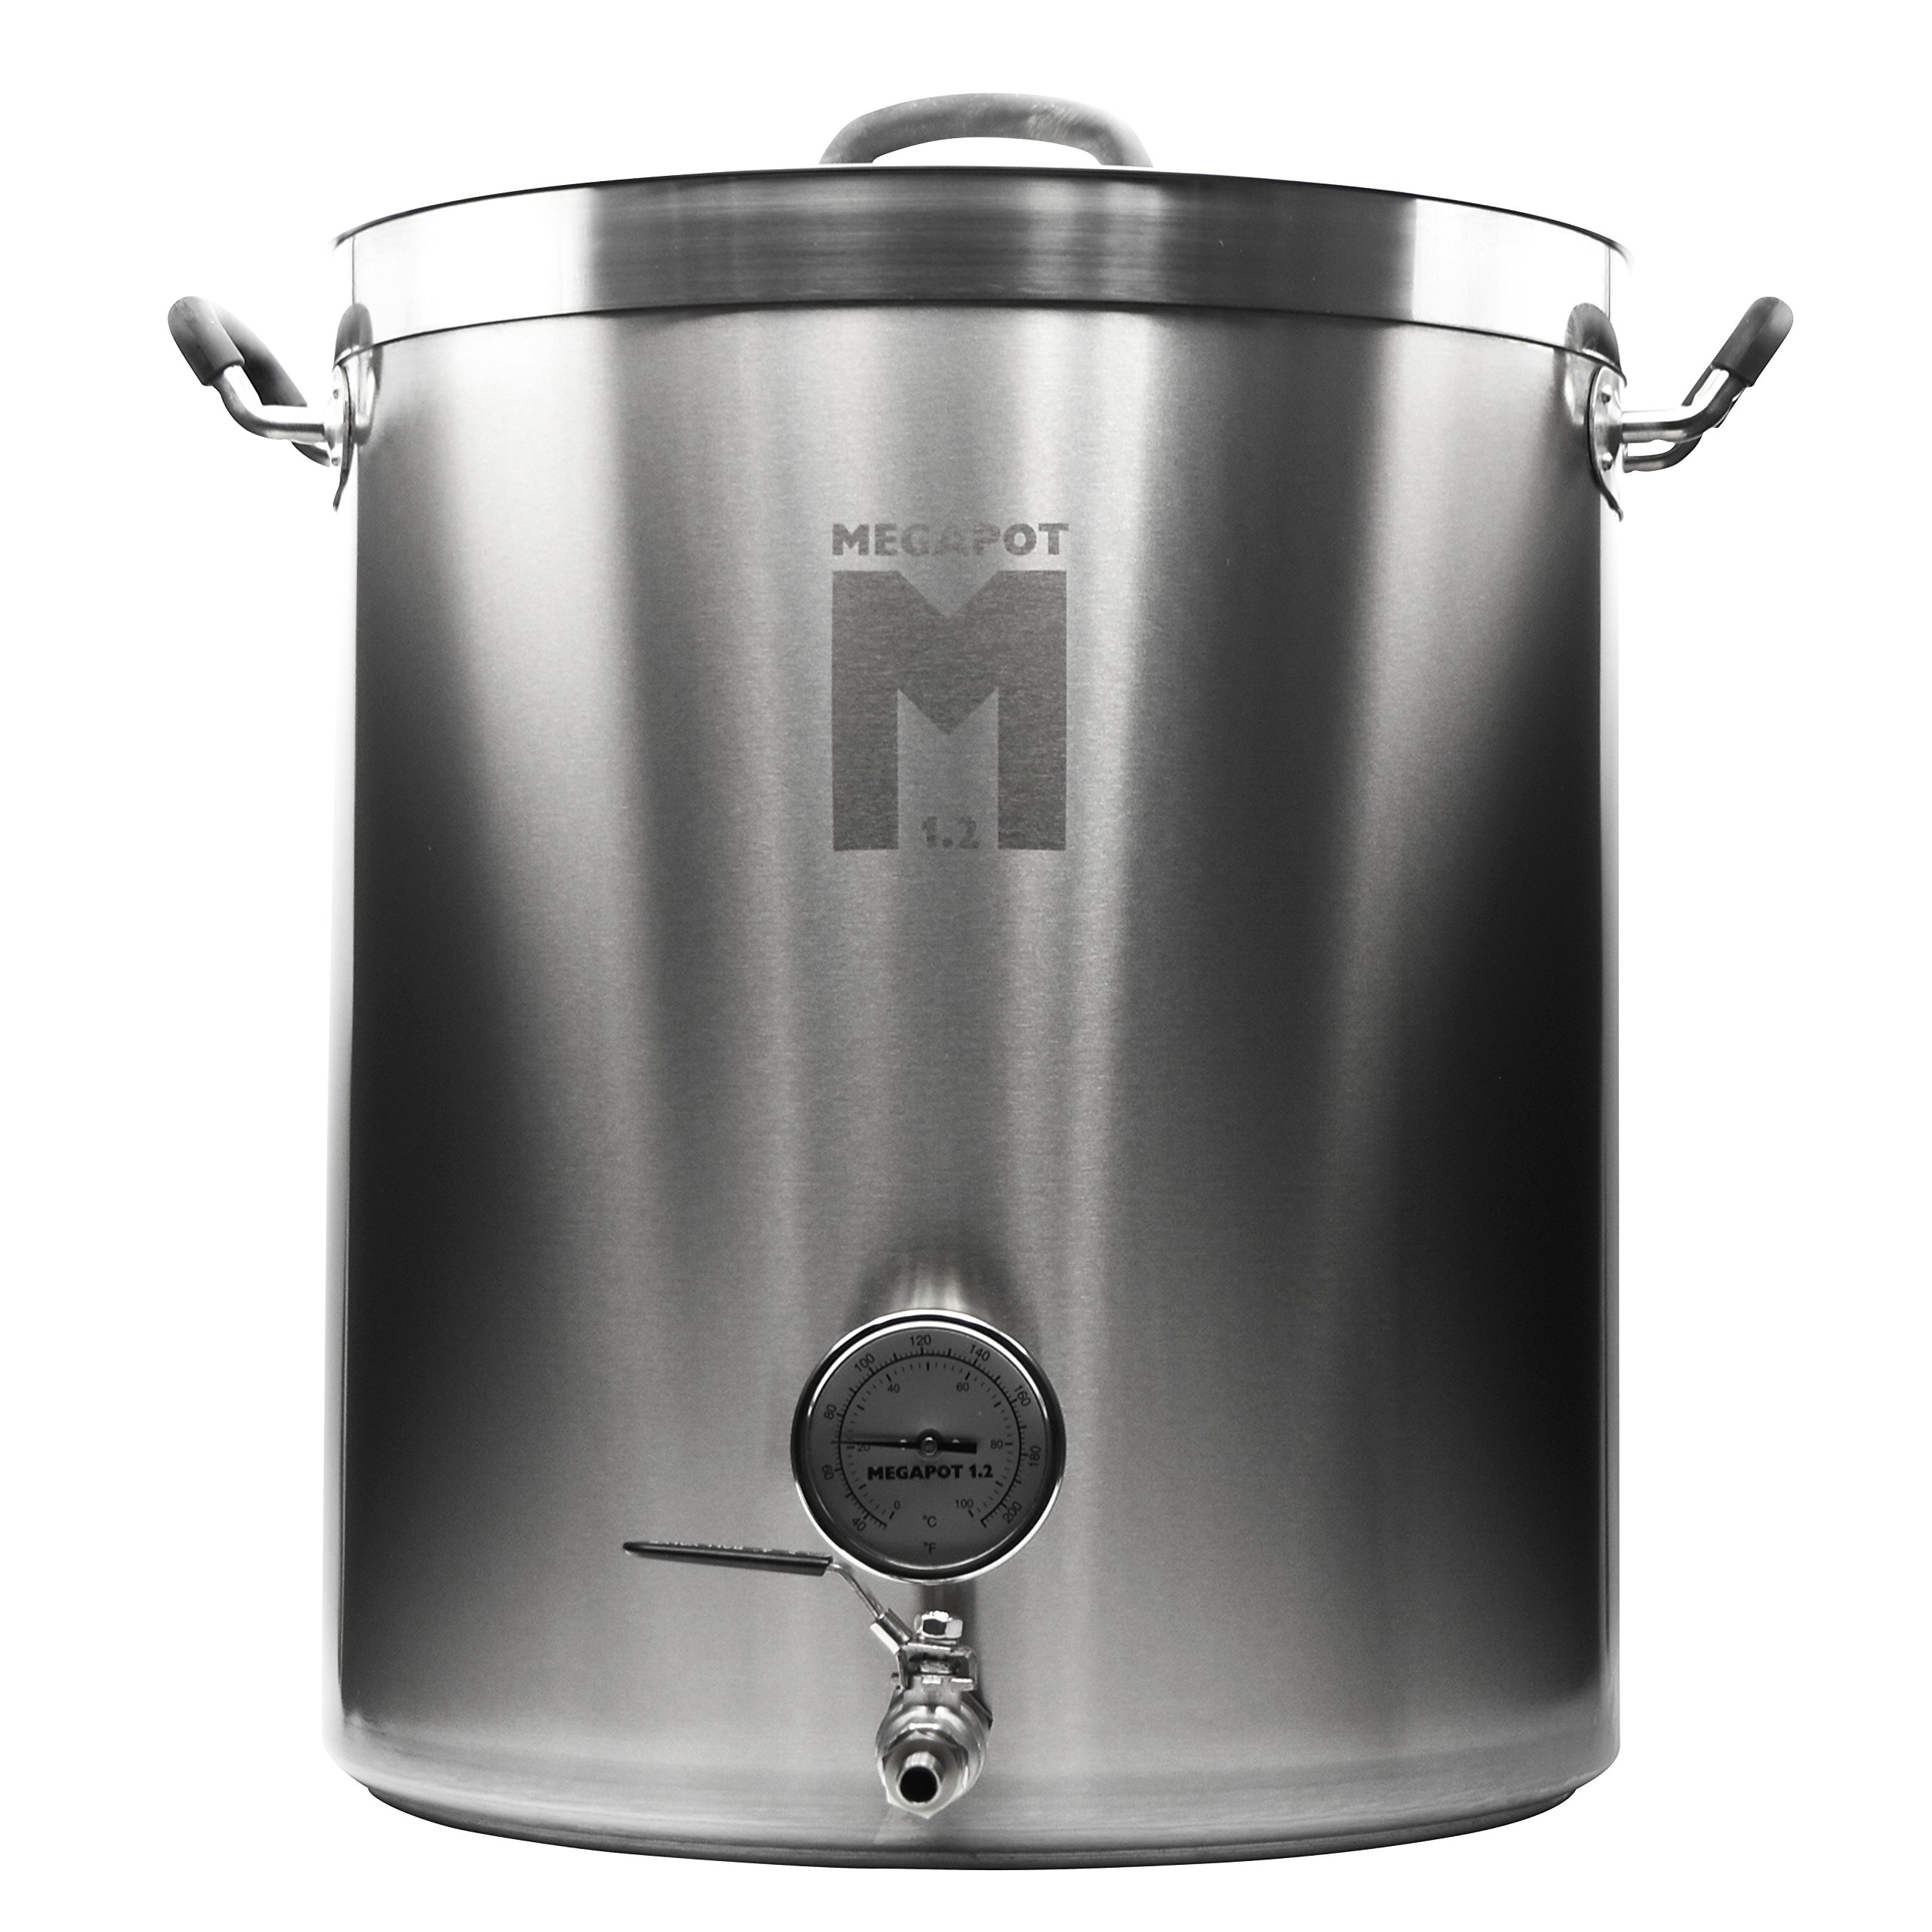 Northern Brewer - Megapot 1.2 Homebrew Stainless Steel Brew Kettle Stock Pot For Beer Brewing (Kettle with a Valve and Thermometer, 15 Gallon/60 Quarts)